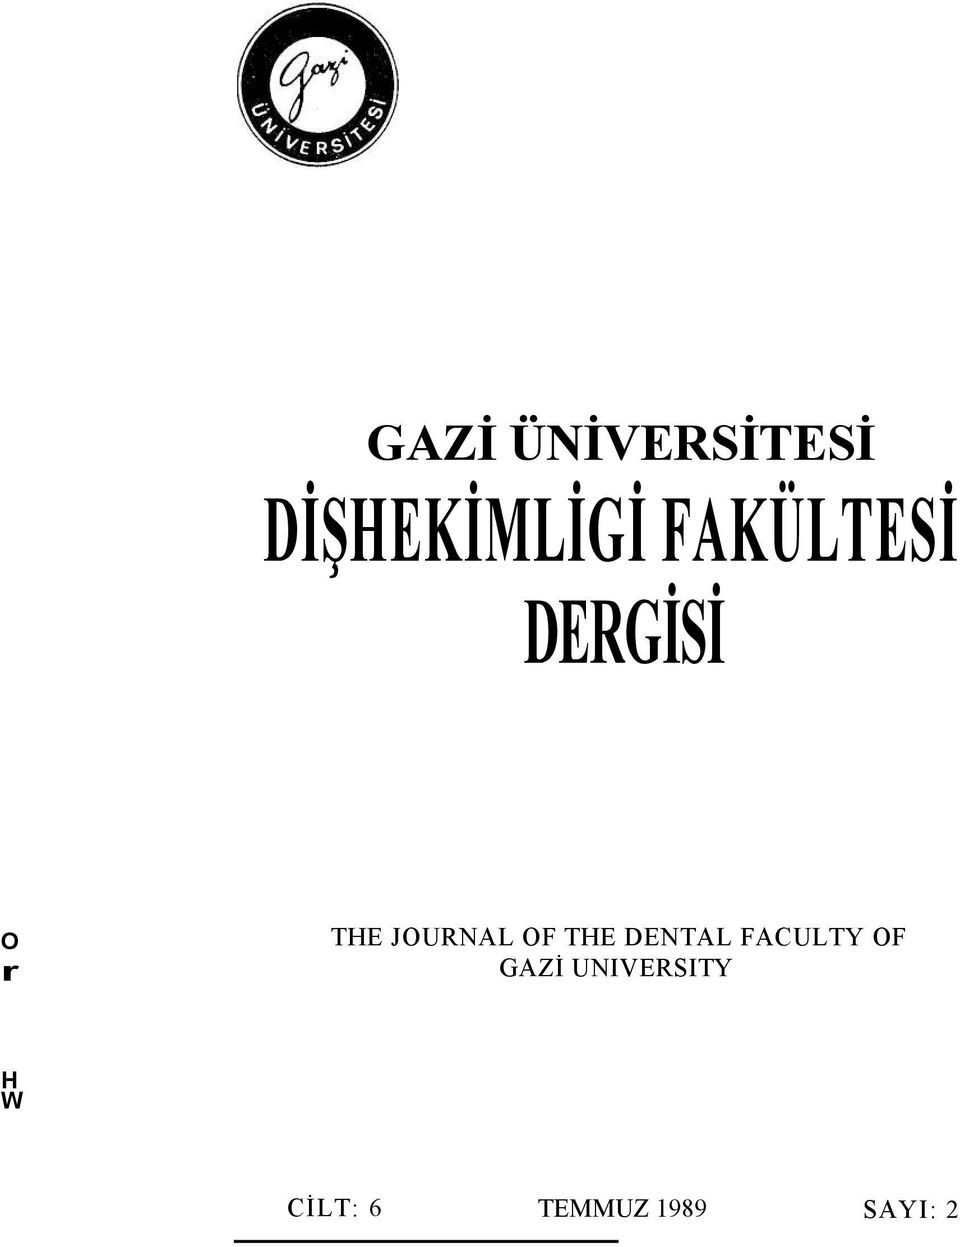 OF THE DENTAL FACULTY OF GAZİ